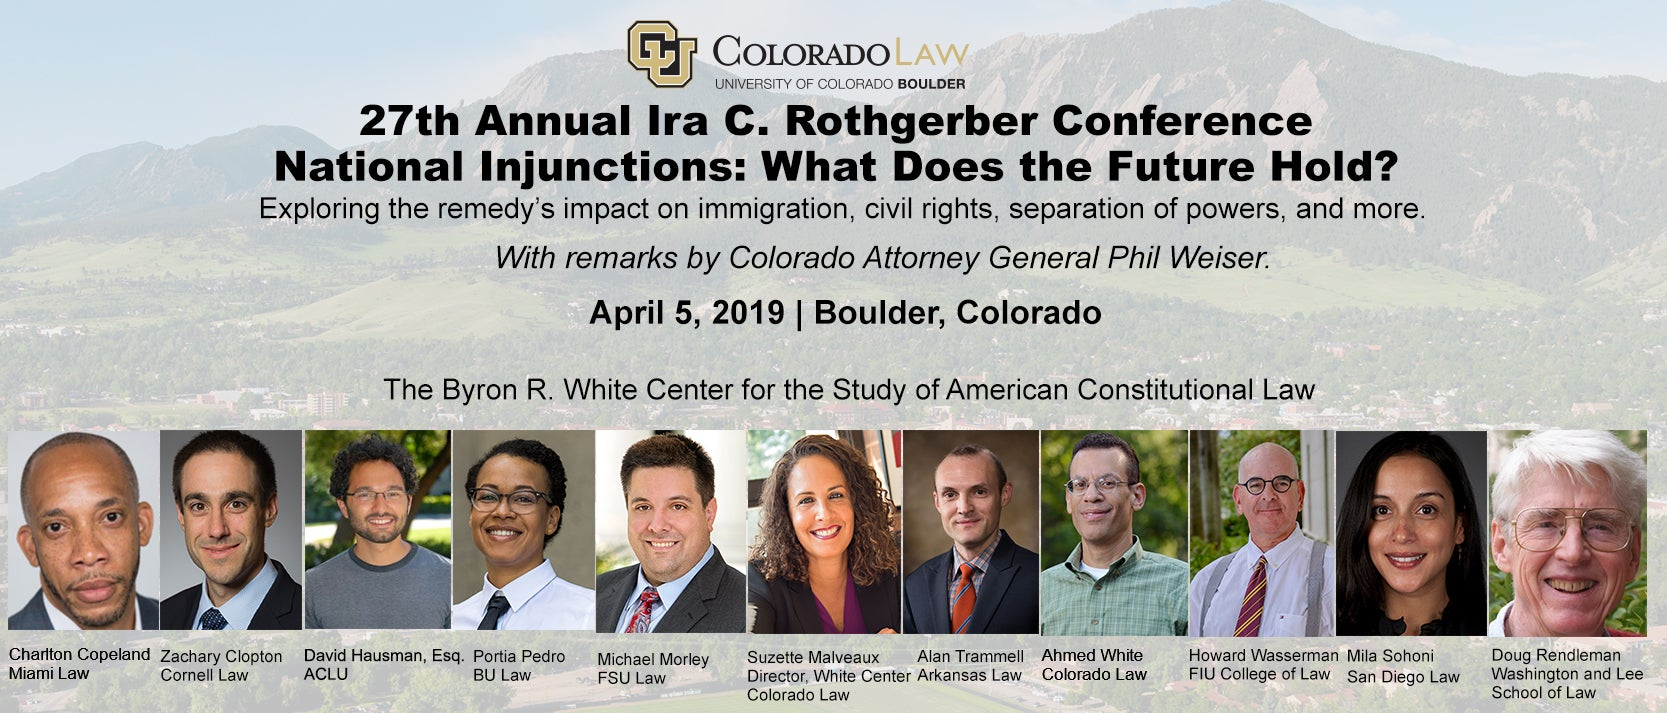 2019 Rothgerber Conference